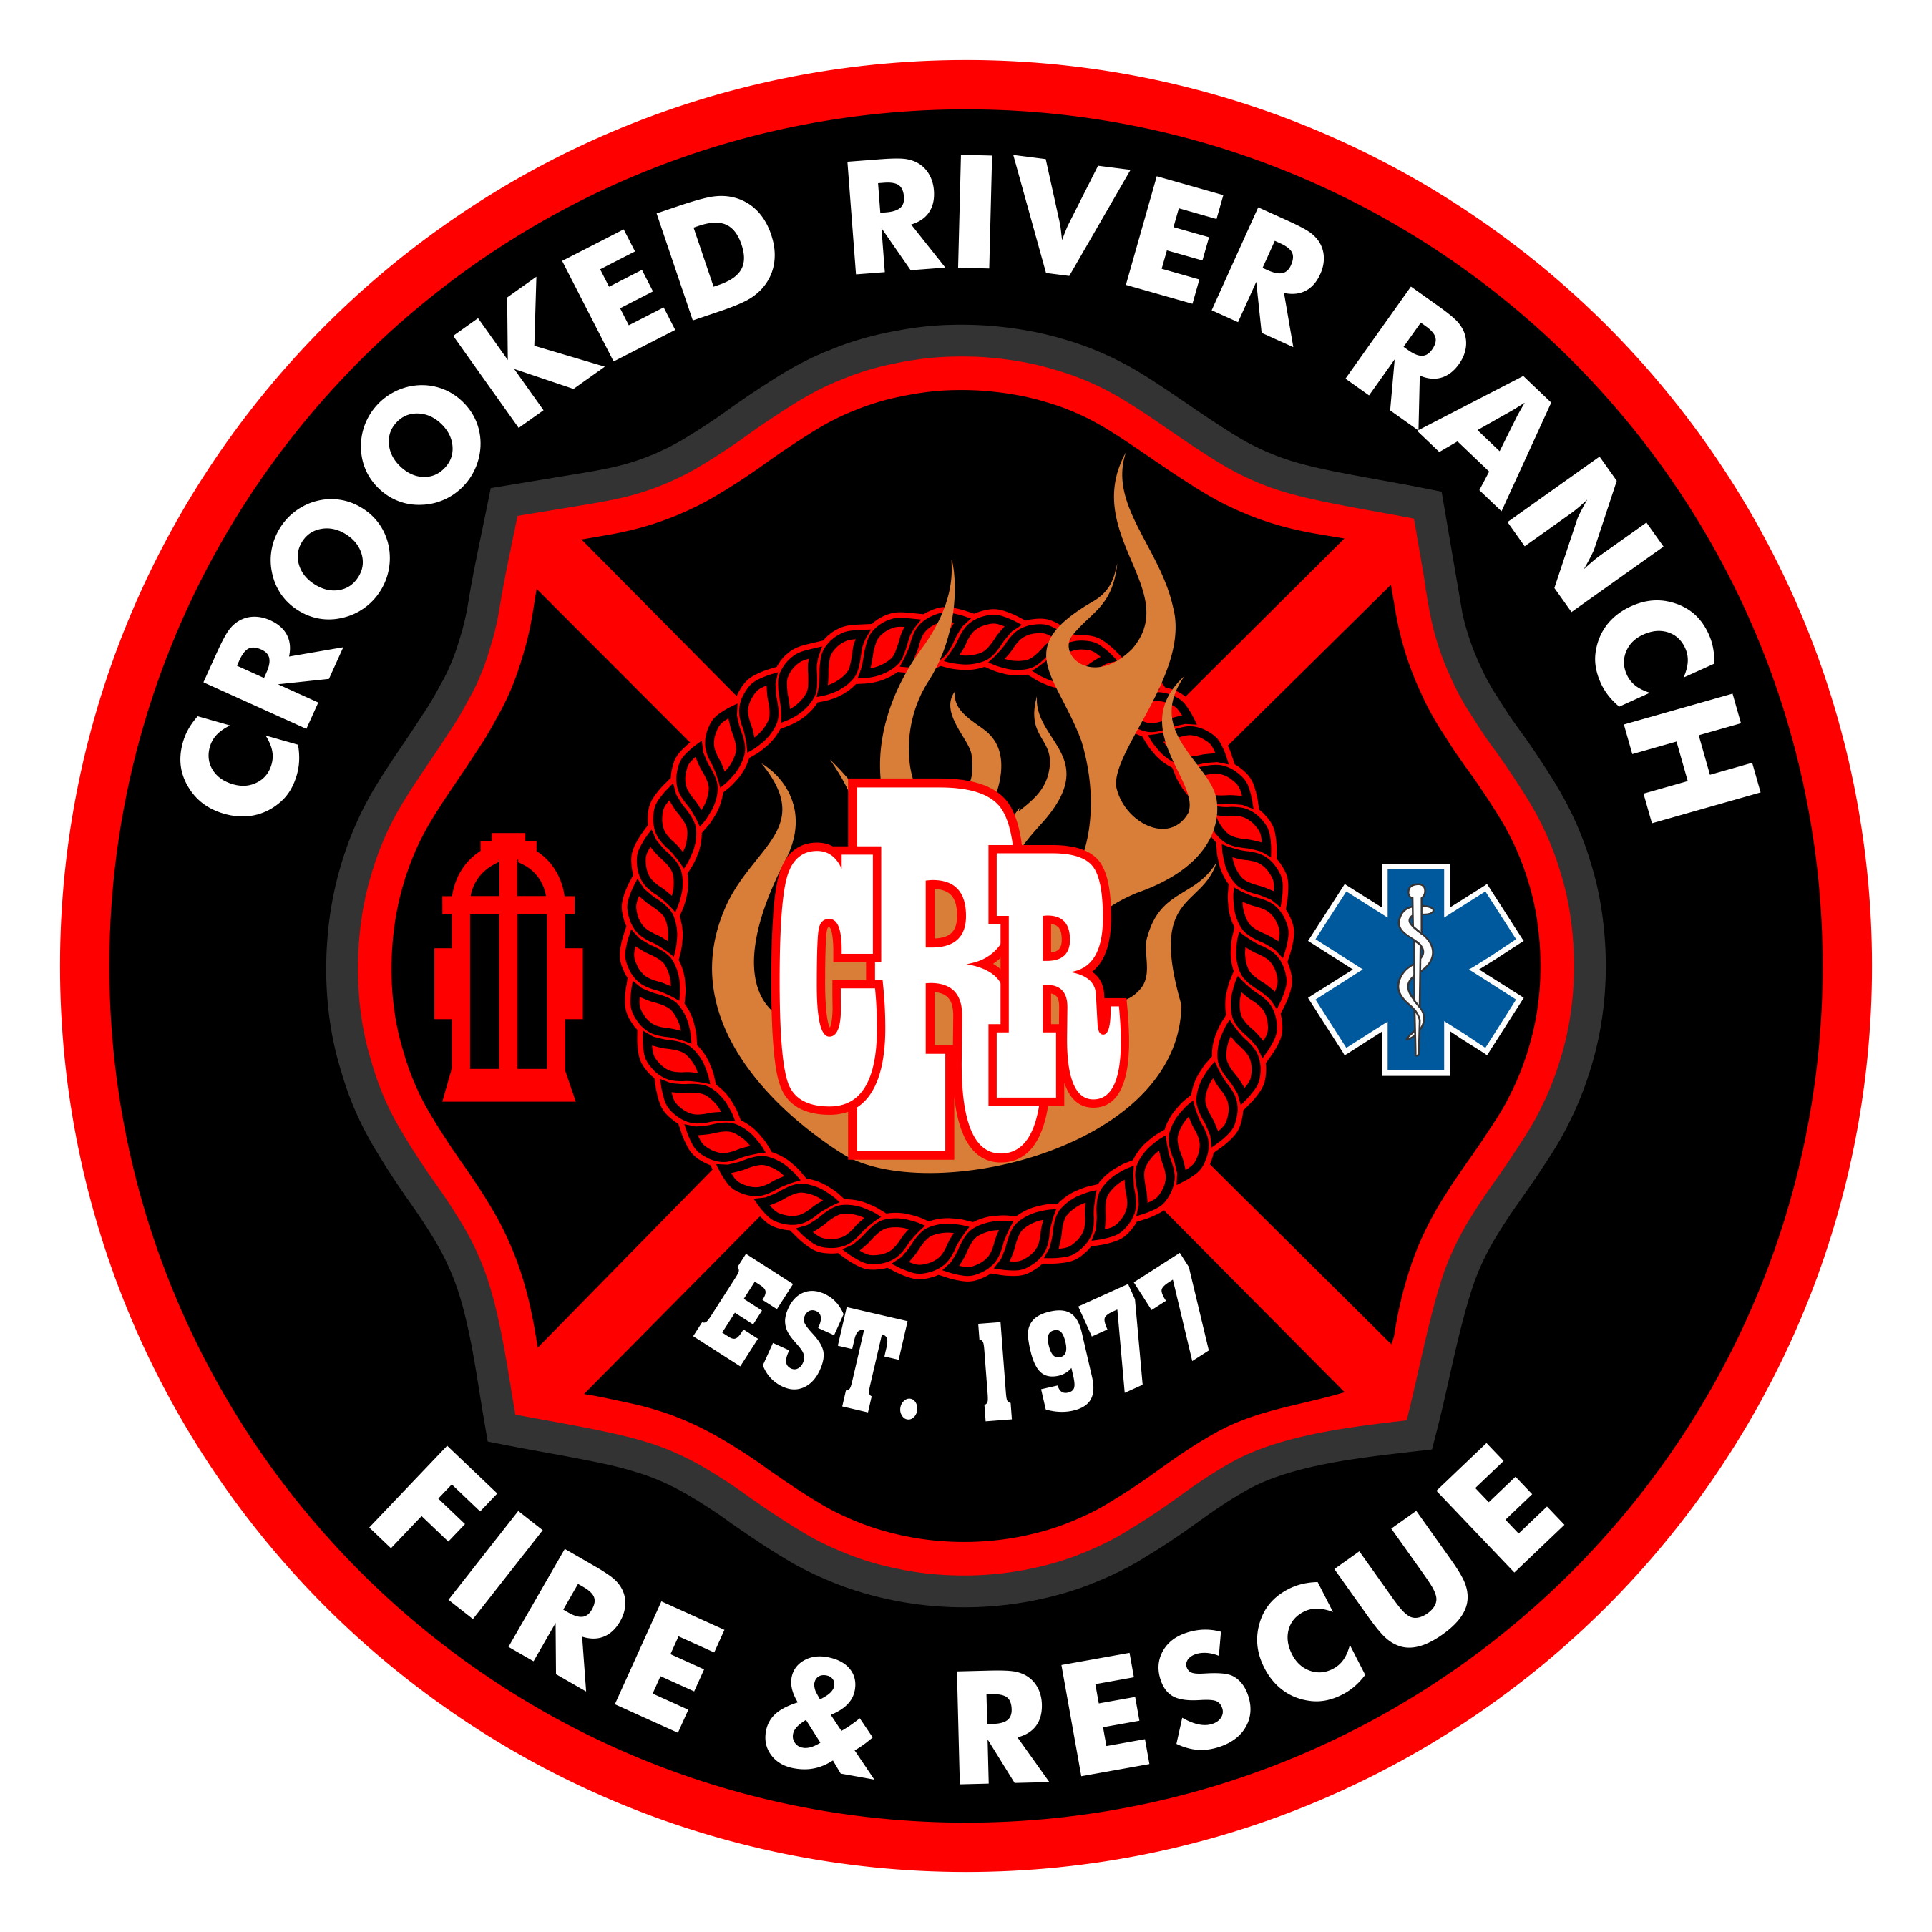 Crooked River Ranch Fire & Rescue